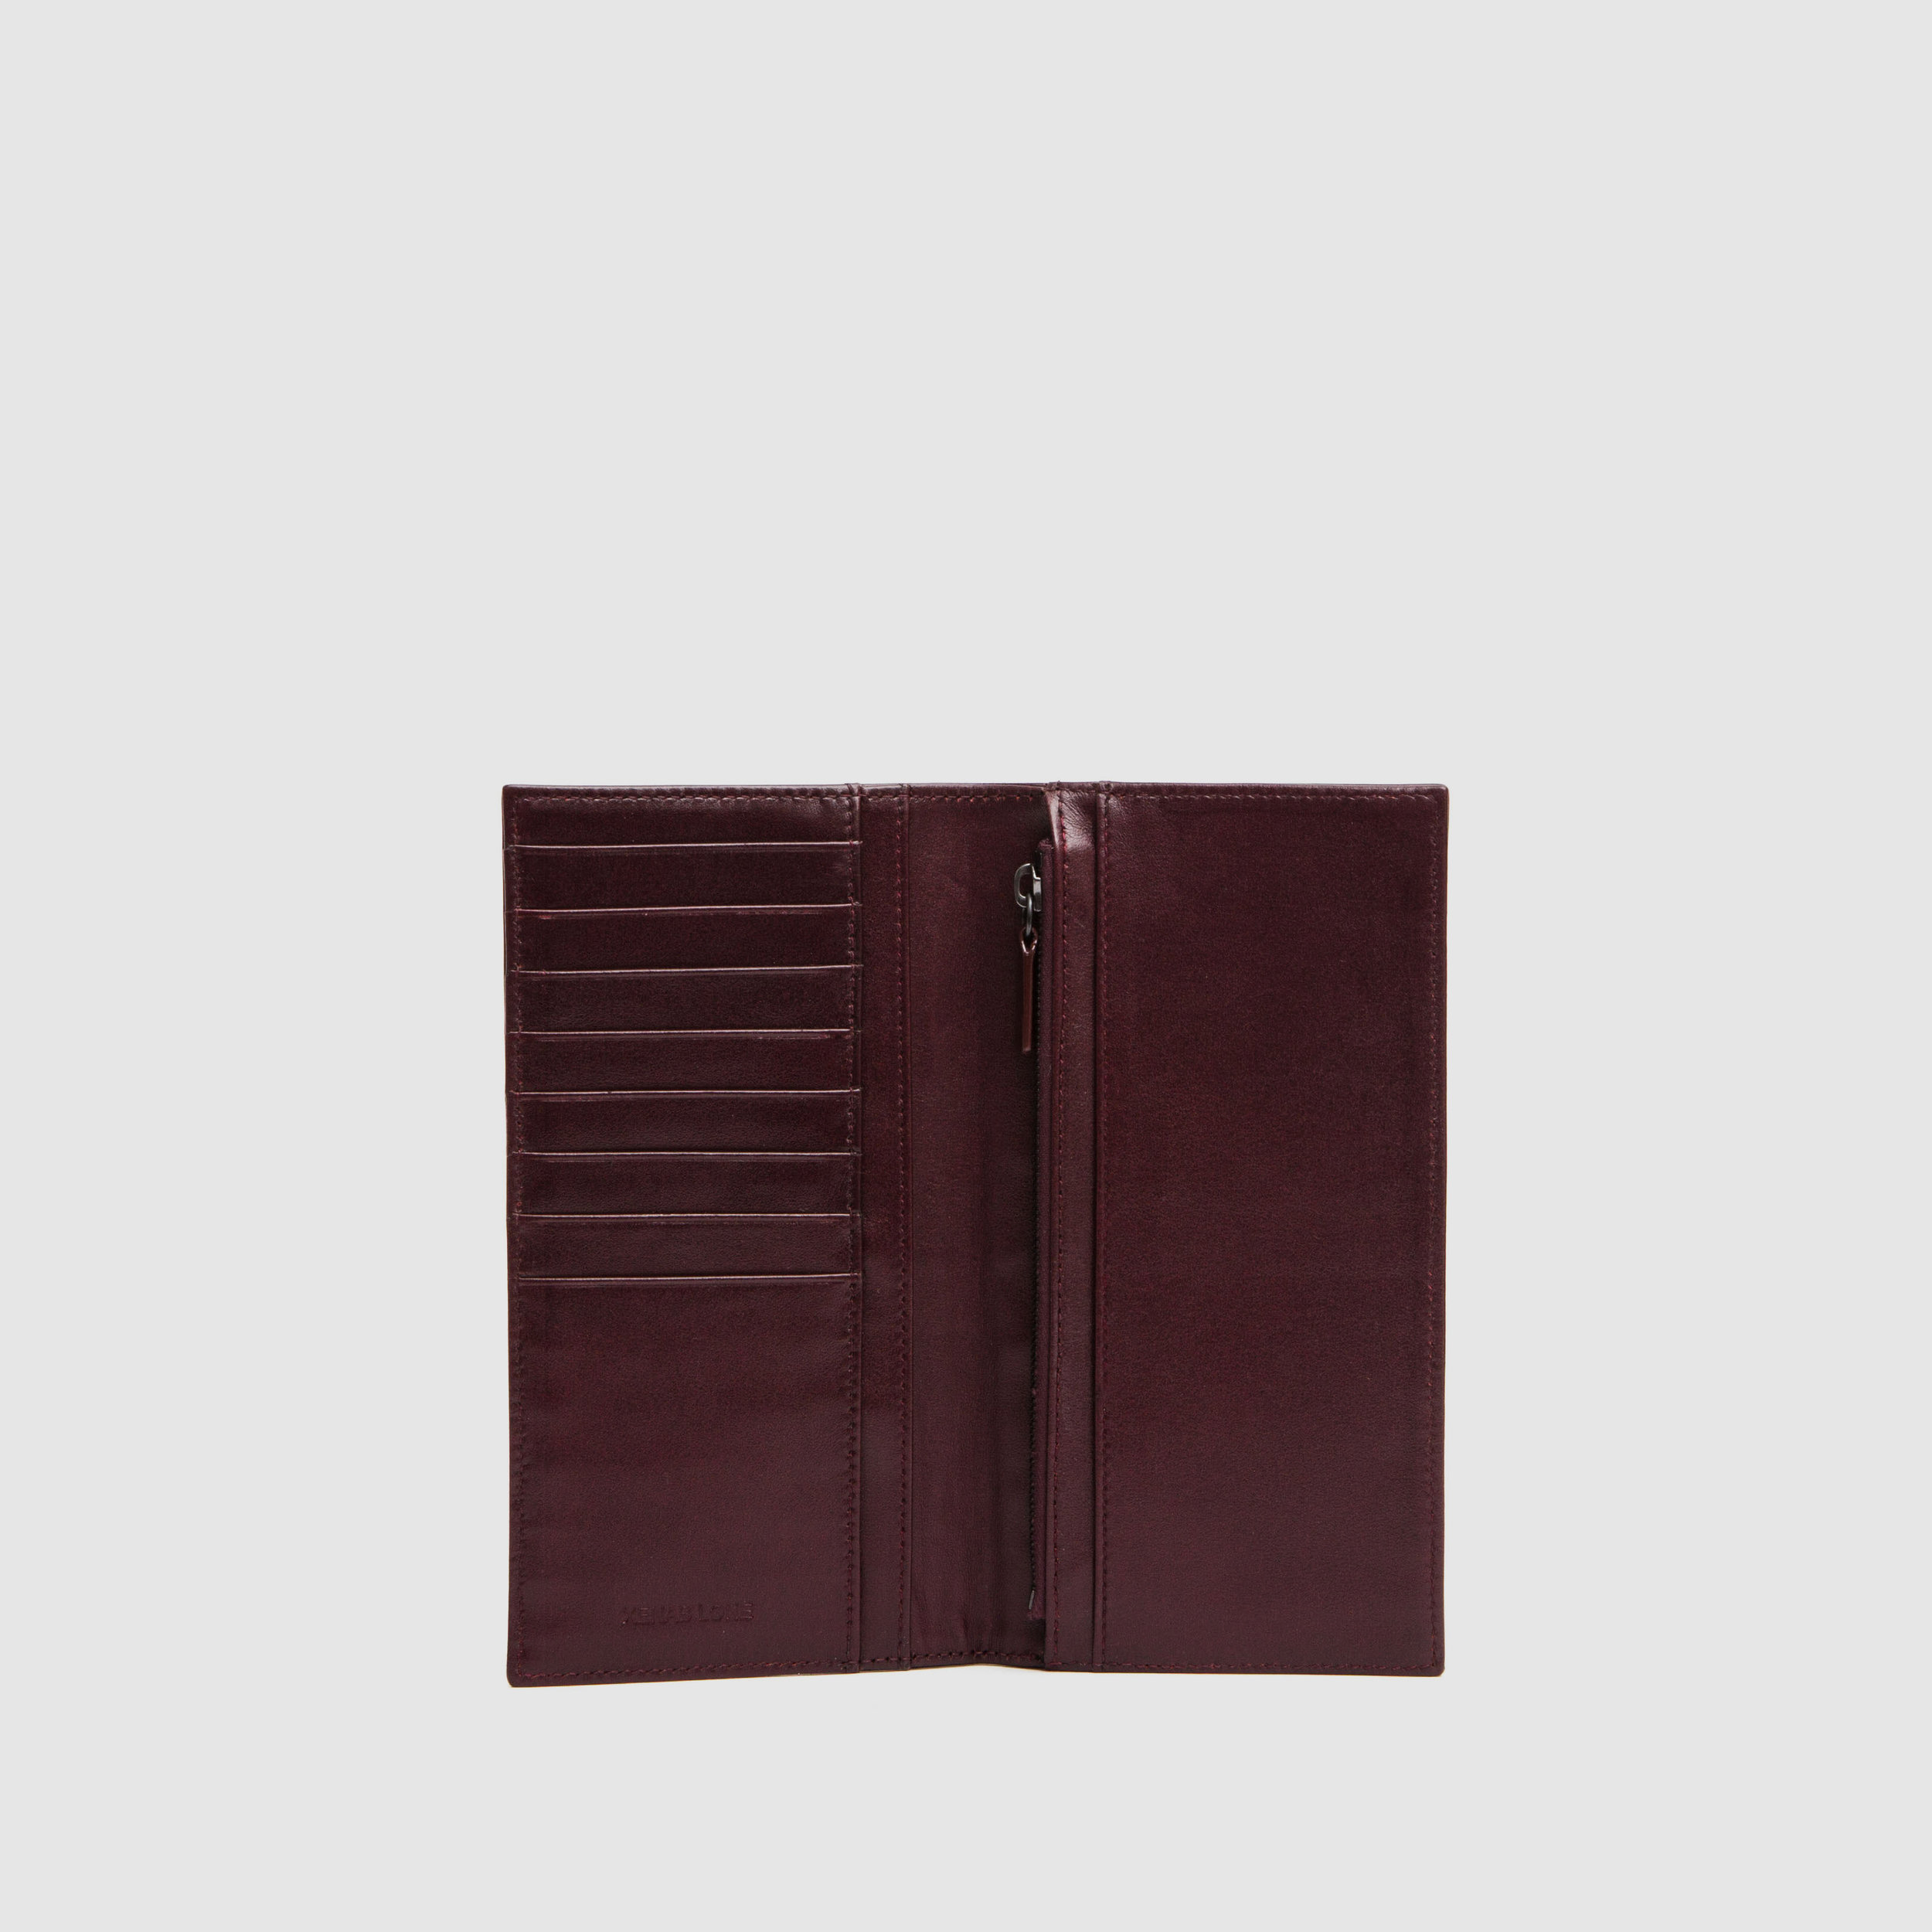 Wallets&Pouches_0001s_0001s_0000_Layer 34.jpg